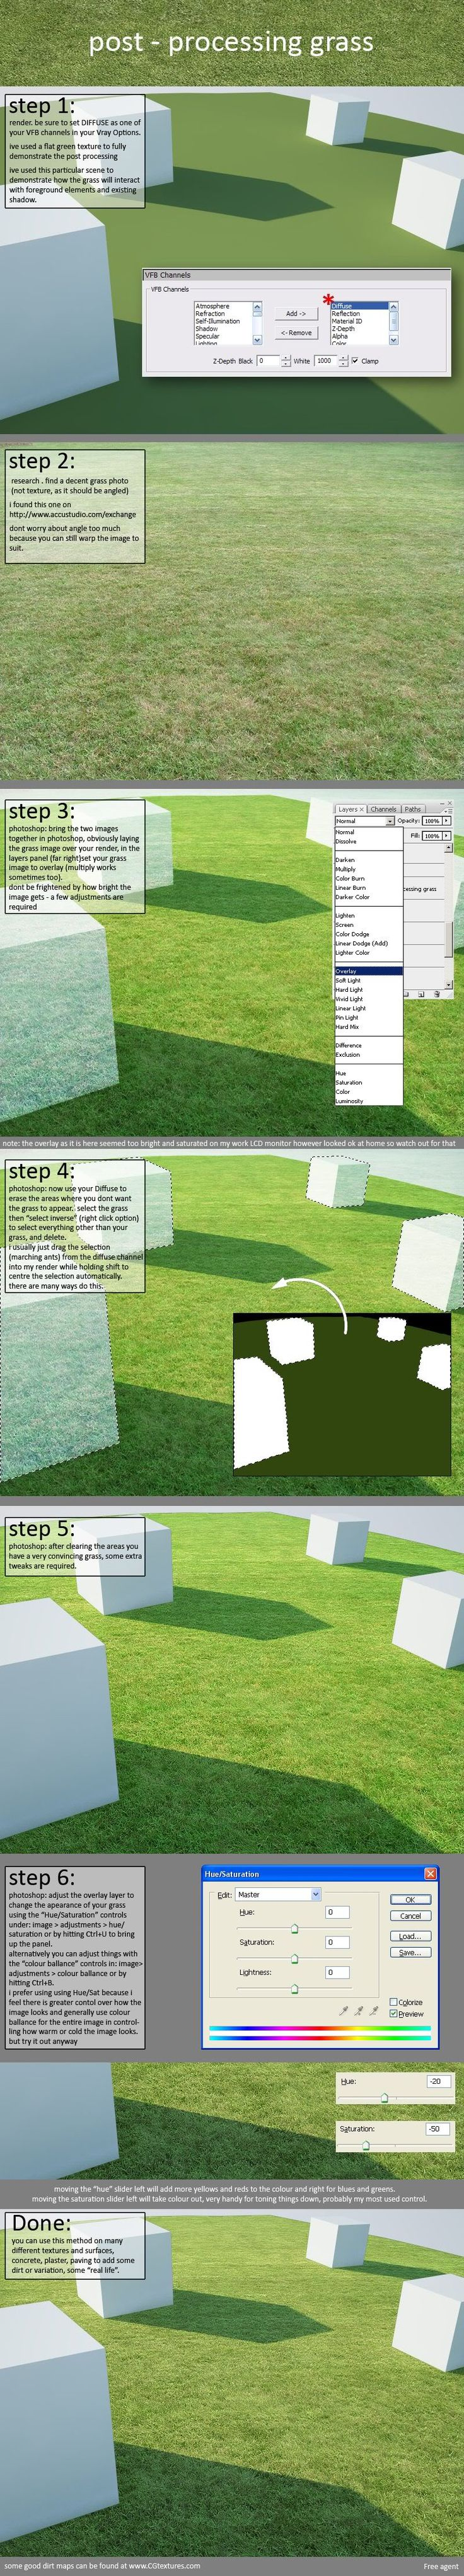 nomeradona ...: How to use Vray Channels in Vray SketchUp